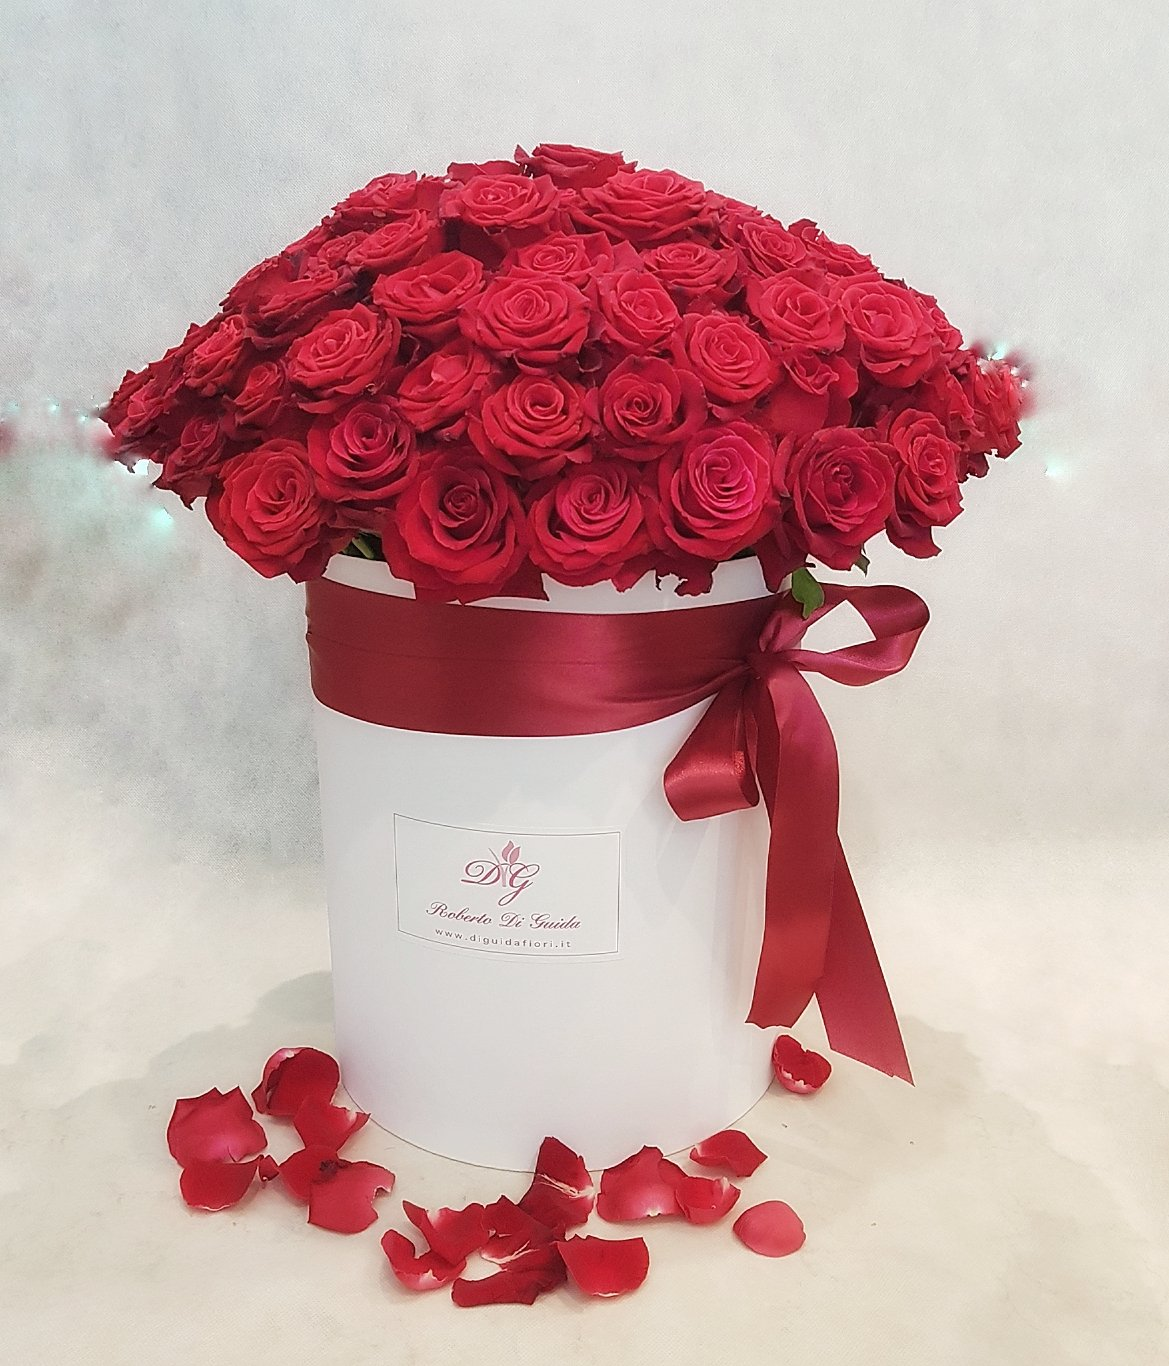 Rose rosse in scatola – Red Rose in box